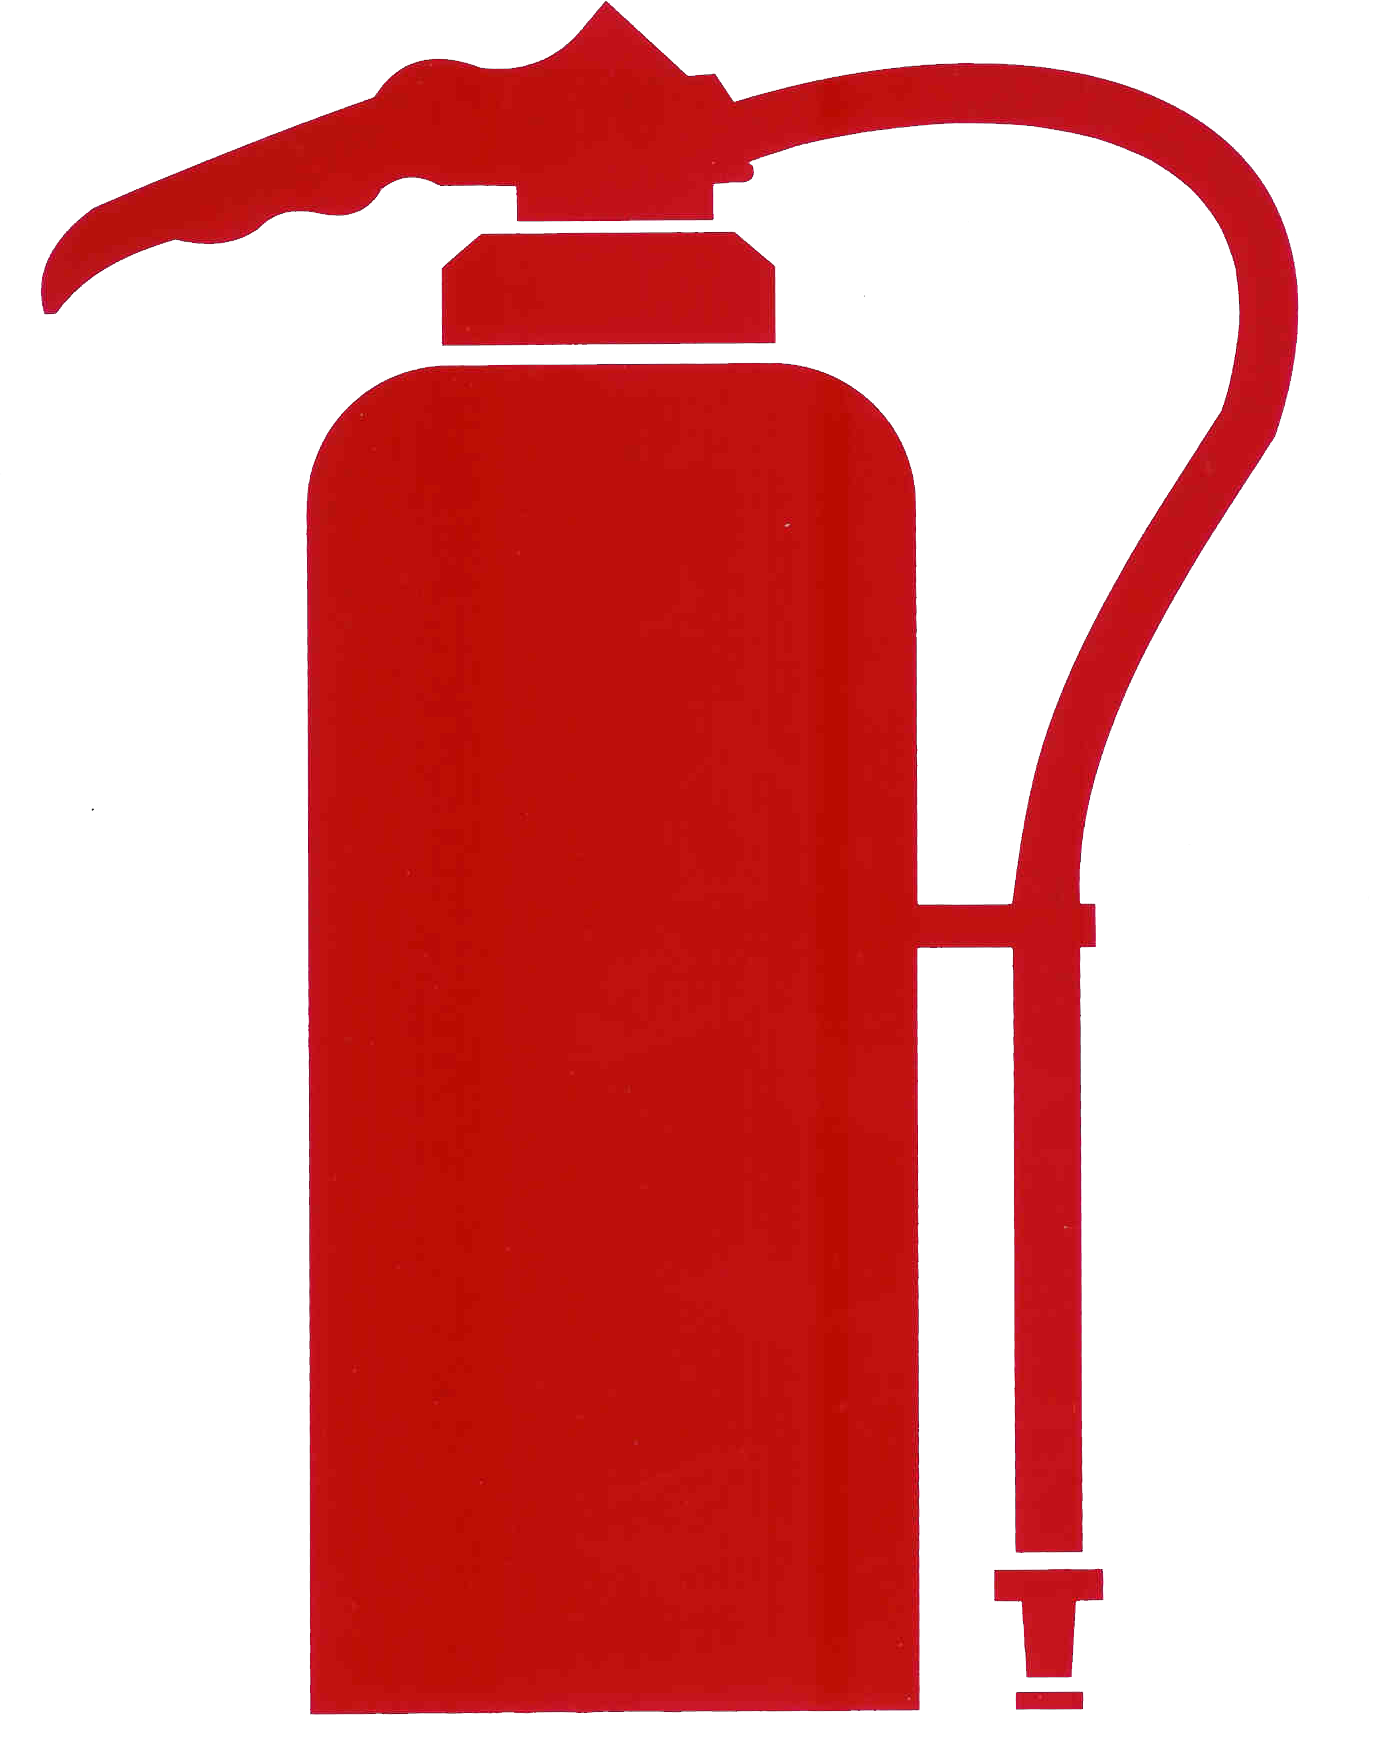 Wall e clipart fire extinguisher clipart royalty free stock Pin by Next on Clipart | Fire extinguisher, Fire, Png photo clipart royalty free stock